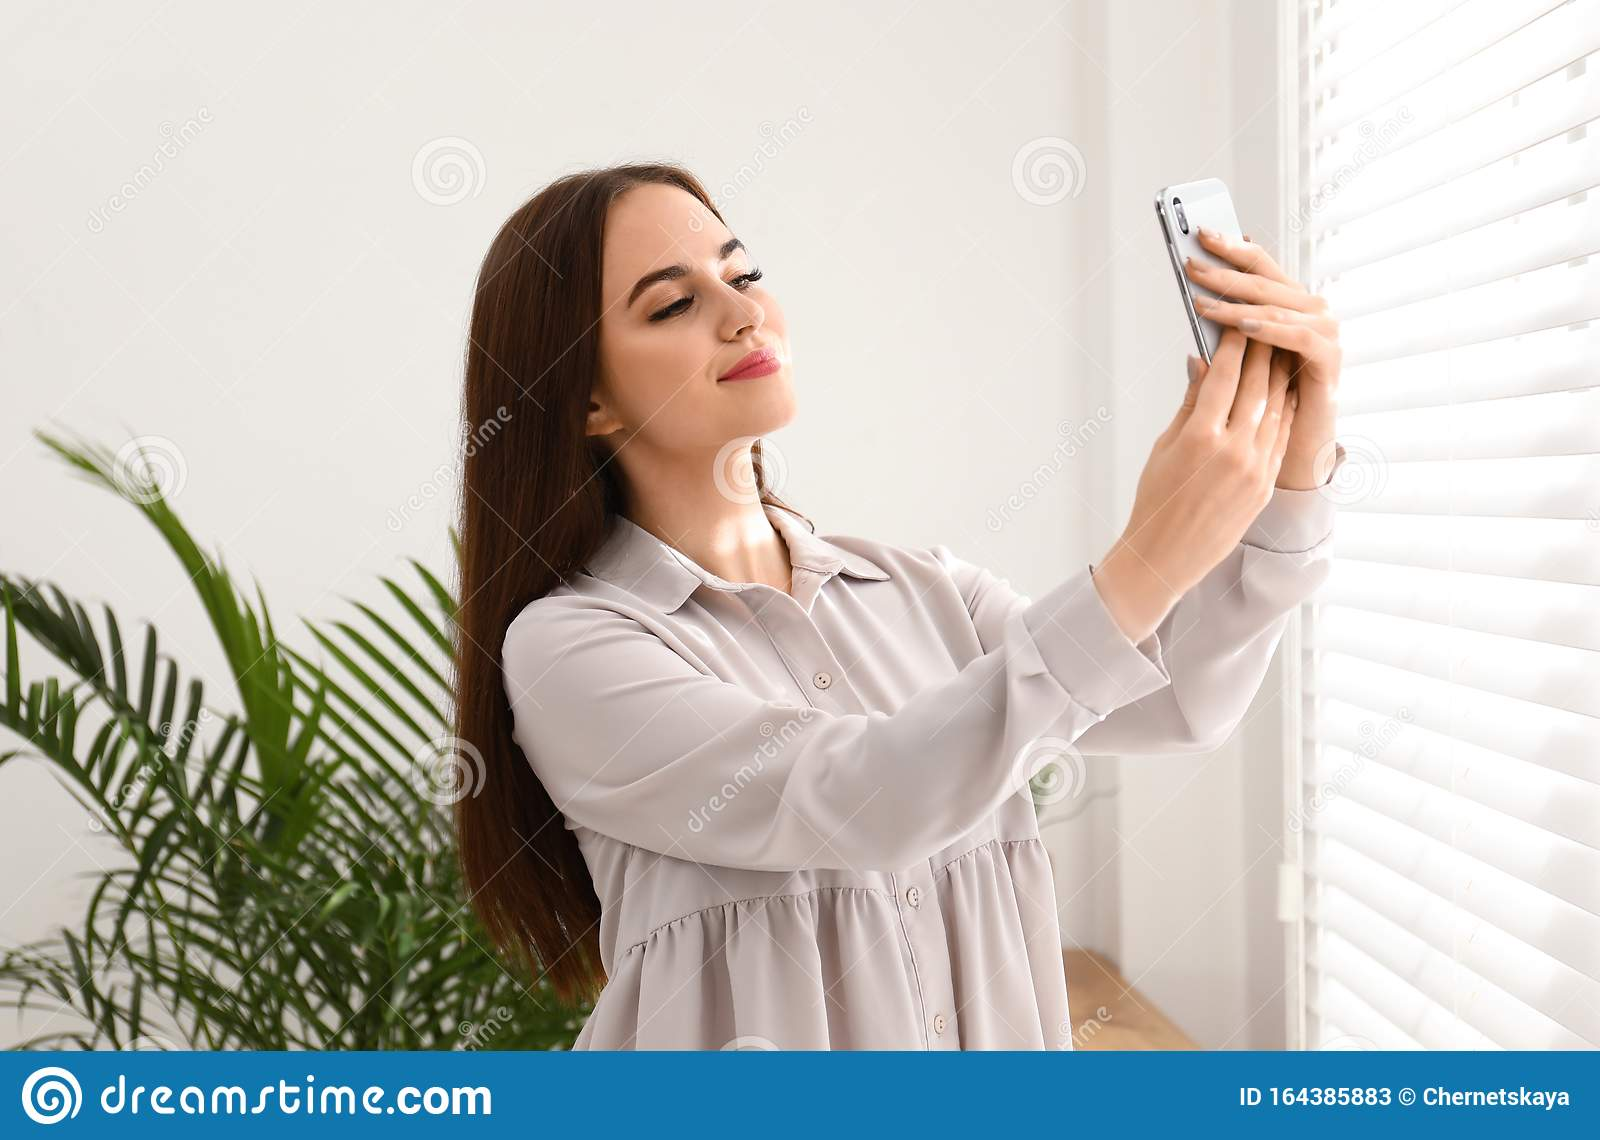 2 926 Selfie Window Photos Free Royalty Free Stock Photos From Dreamstime